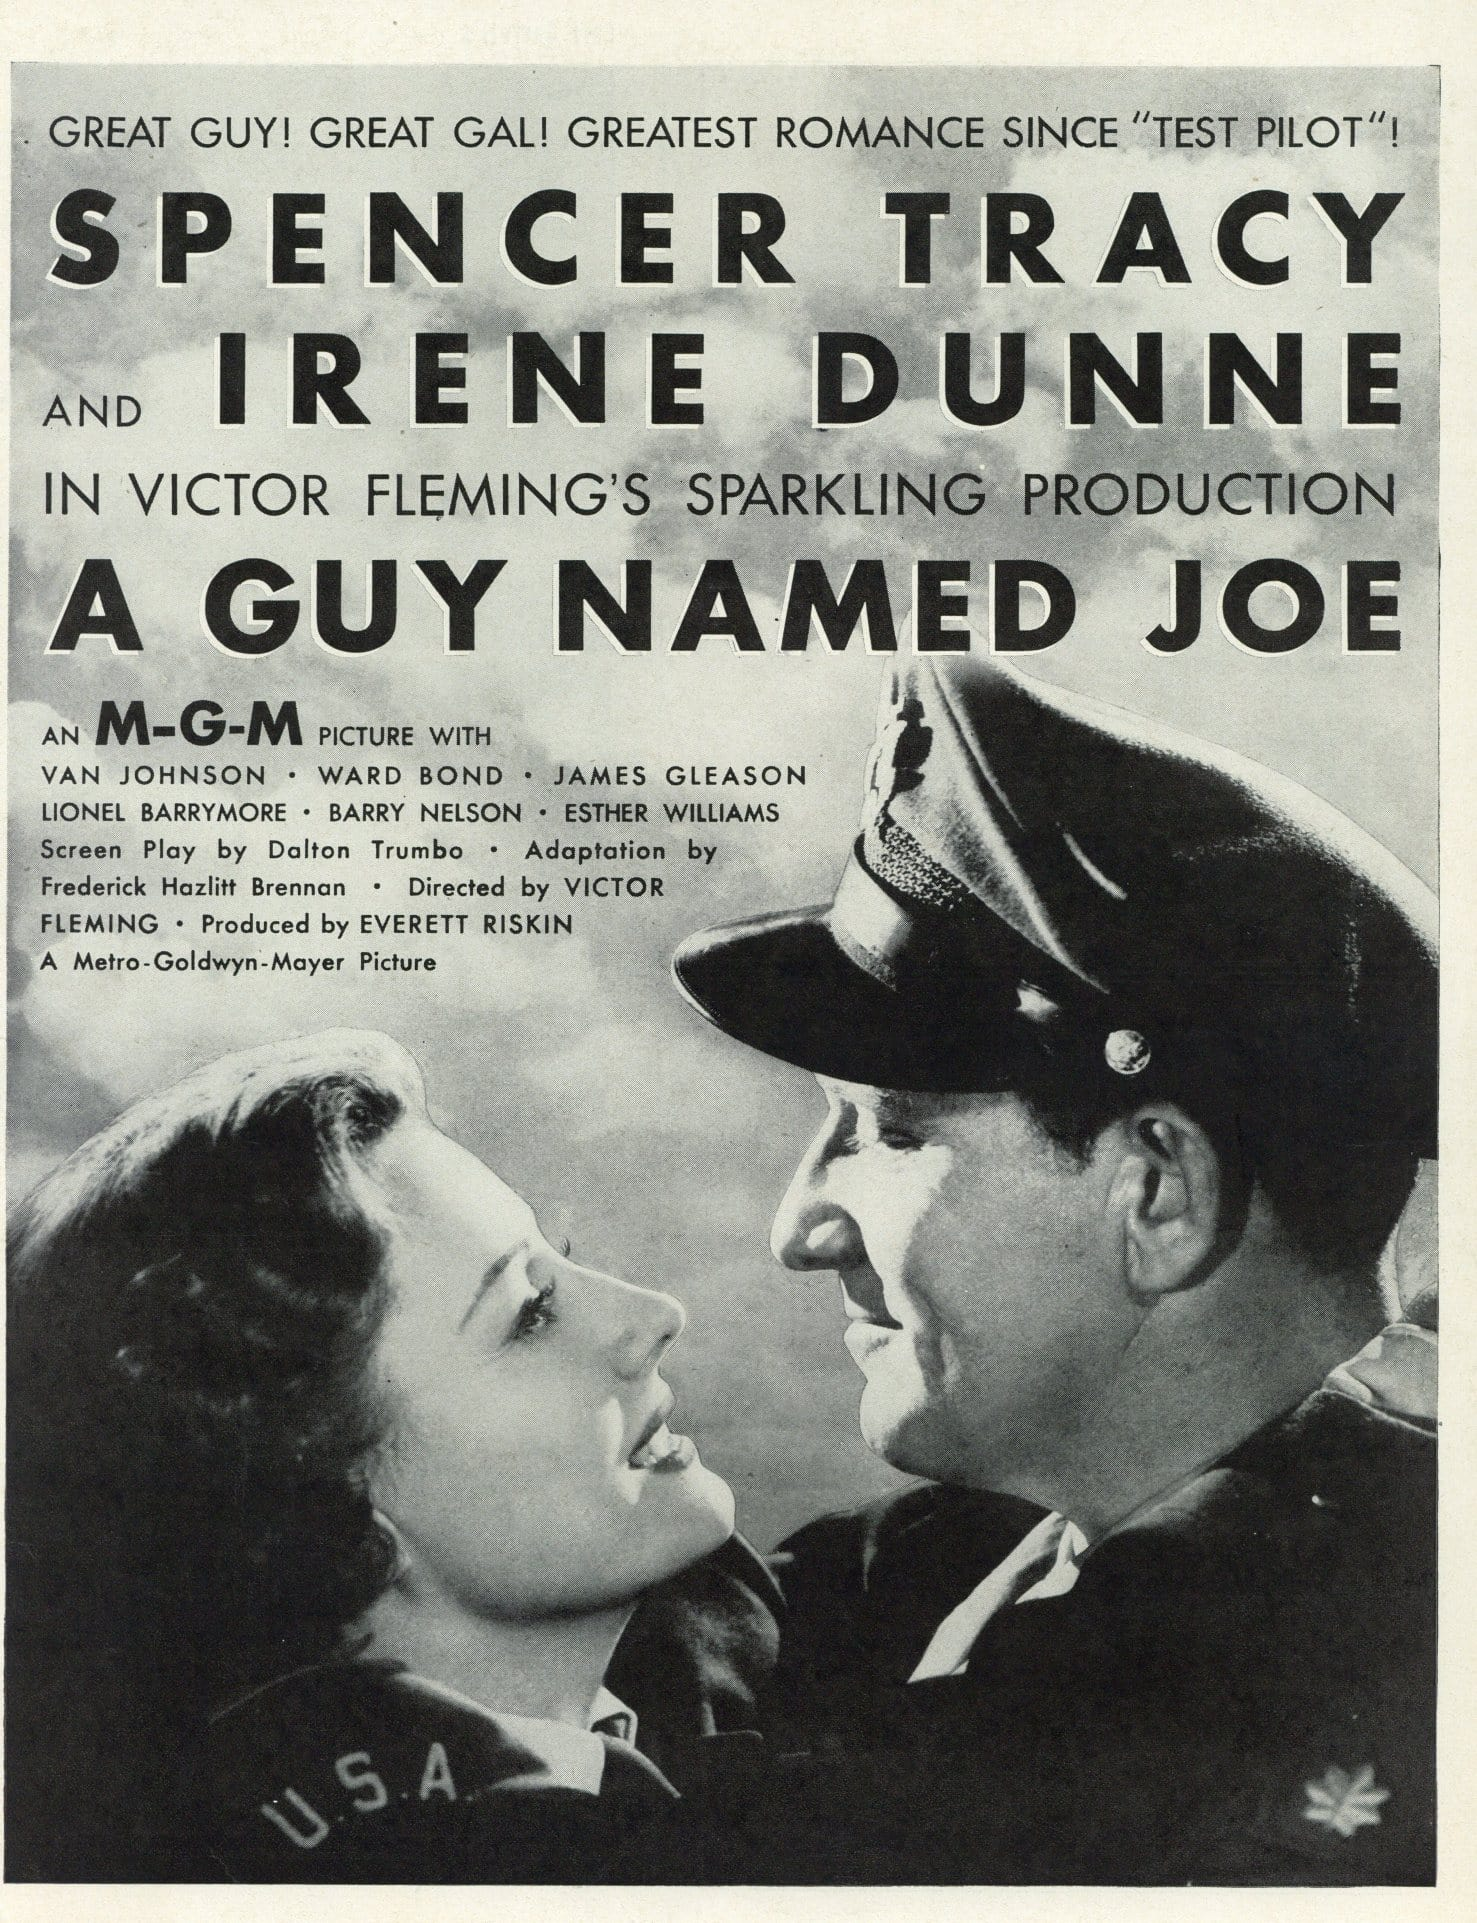 A Guy Named Joe Movie Advertisement - Spencer Tracy - Classic Movie Memorabilia